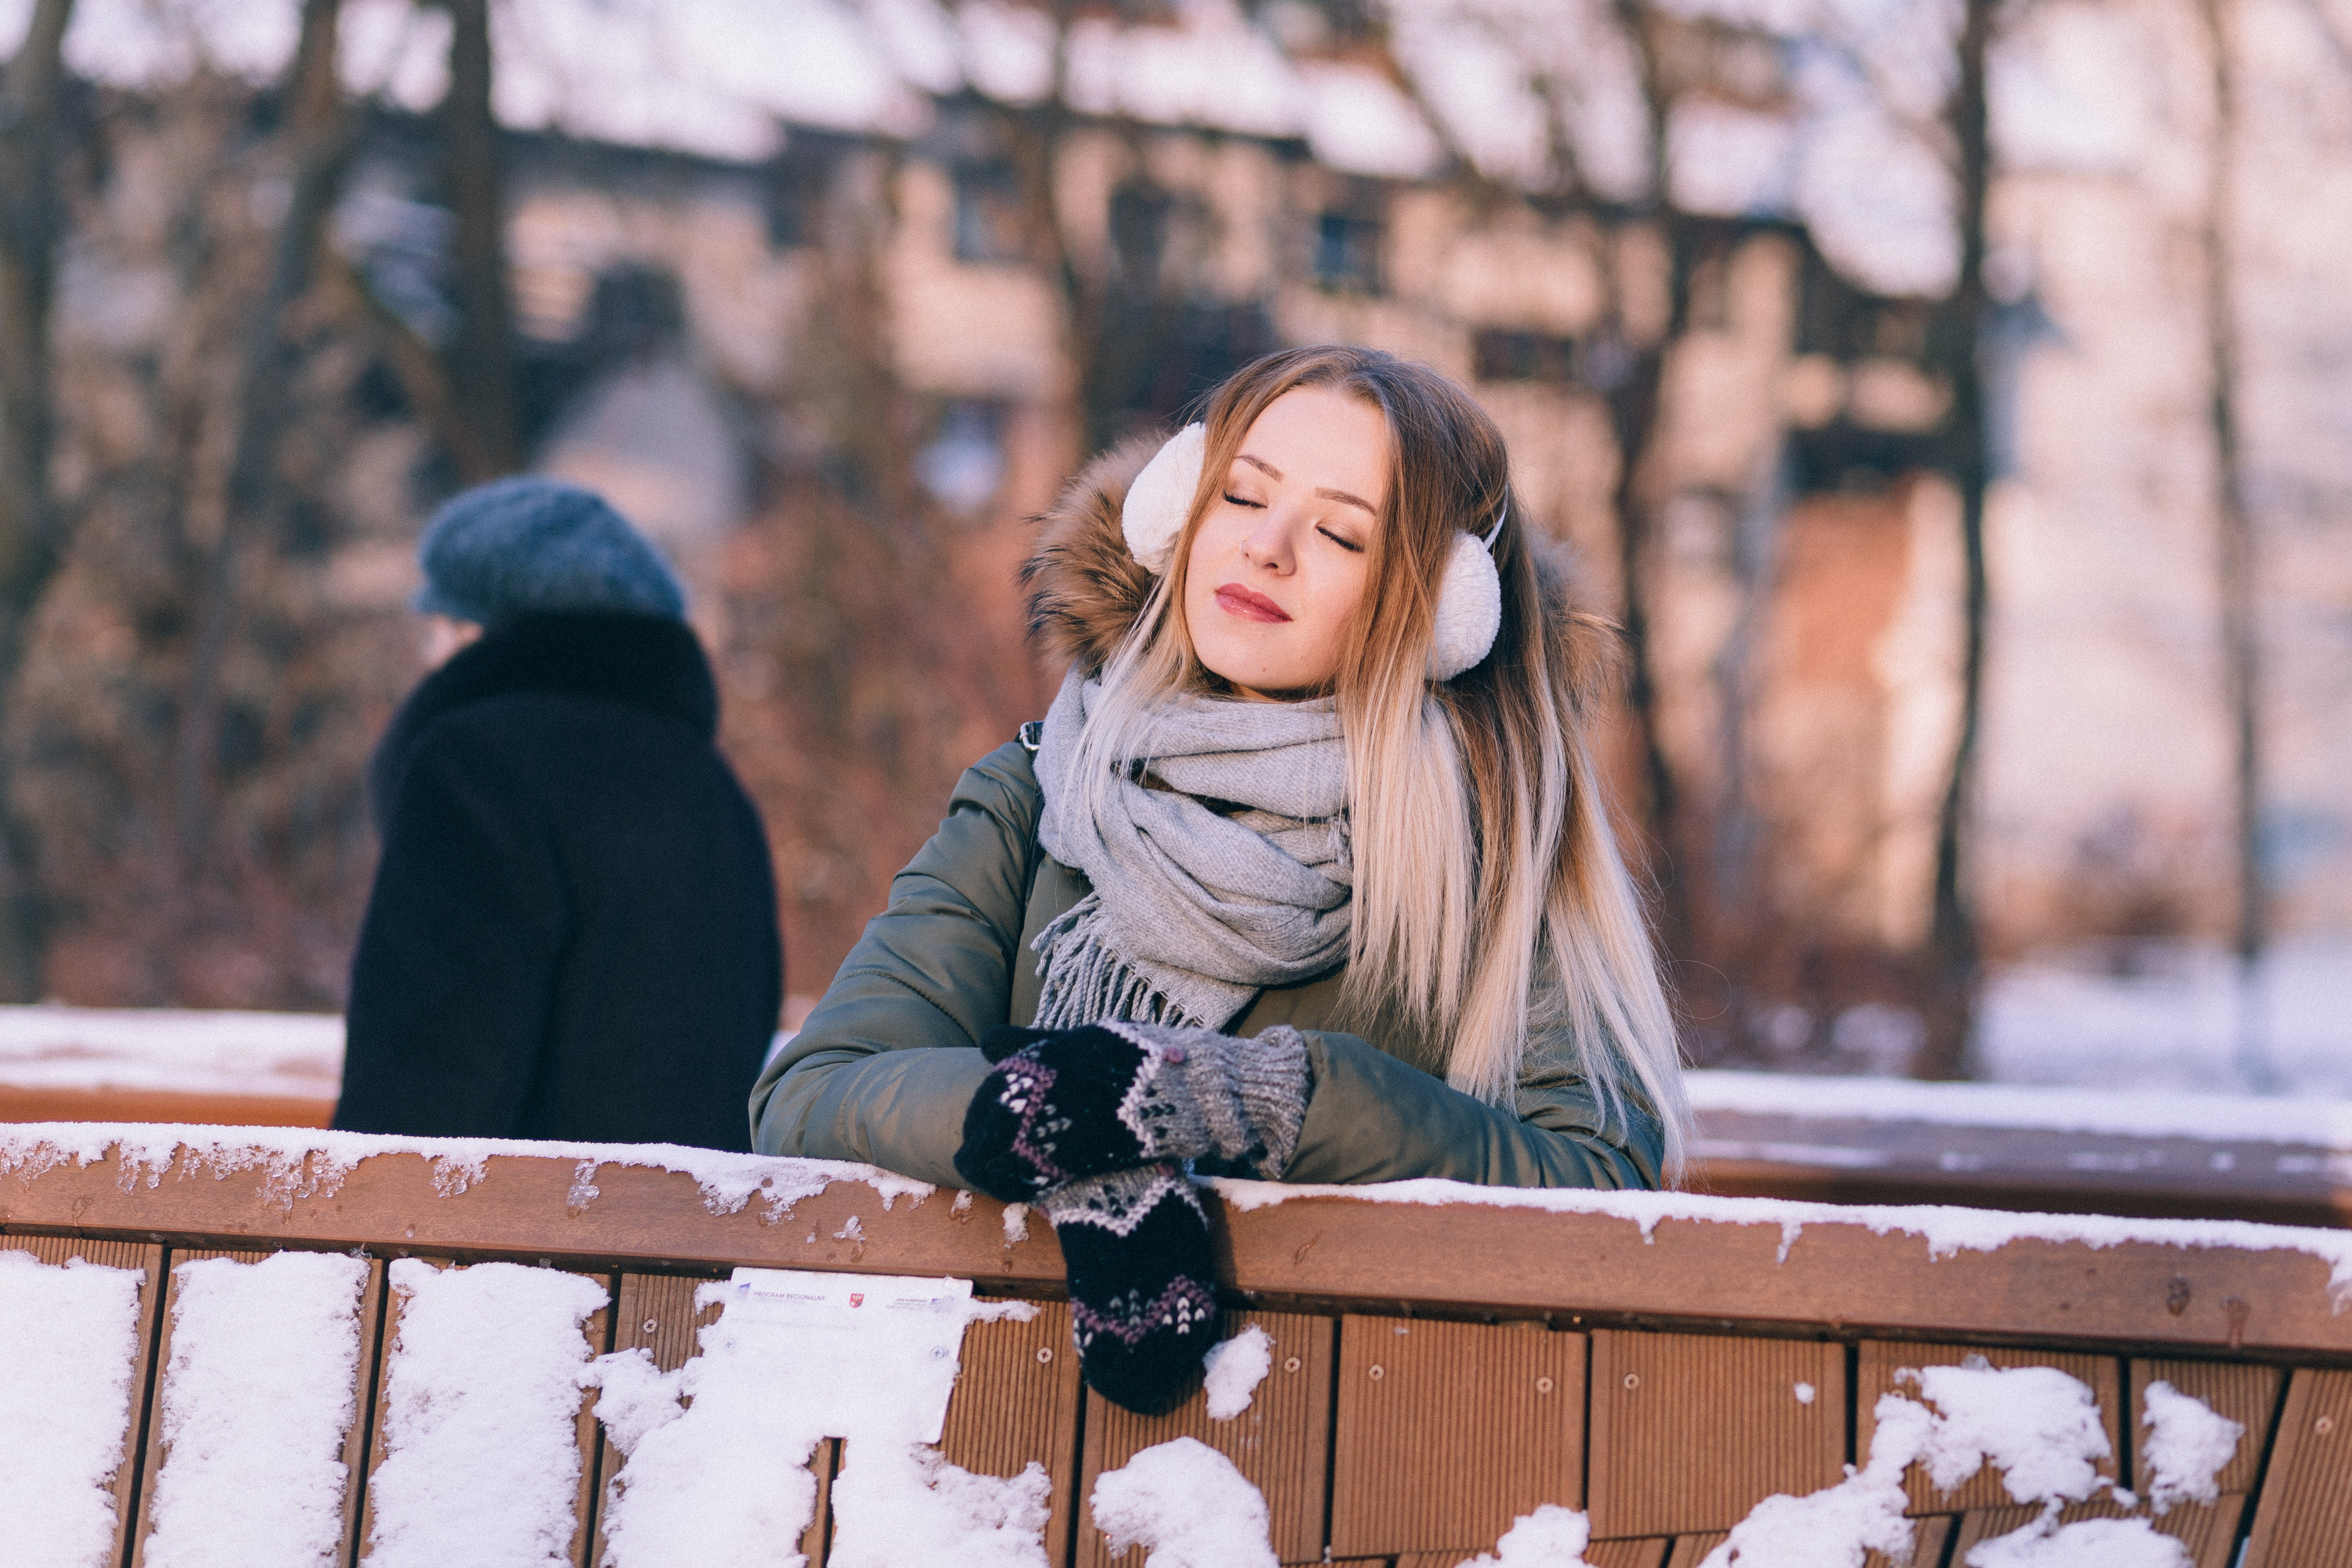 Young woman sitting on bench in winter photo